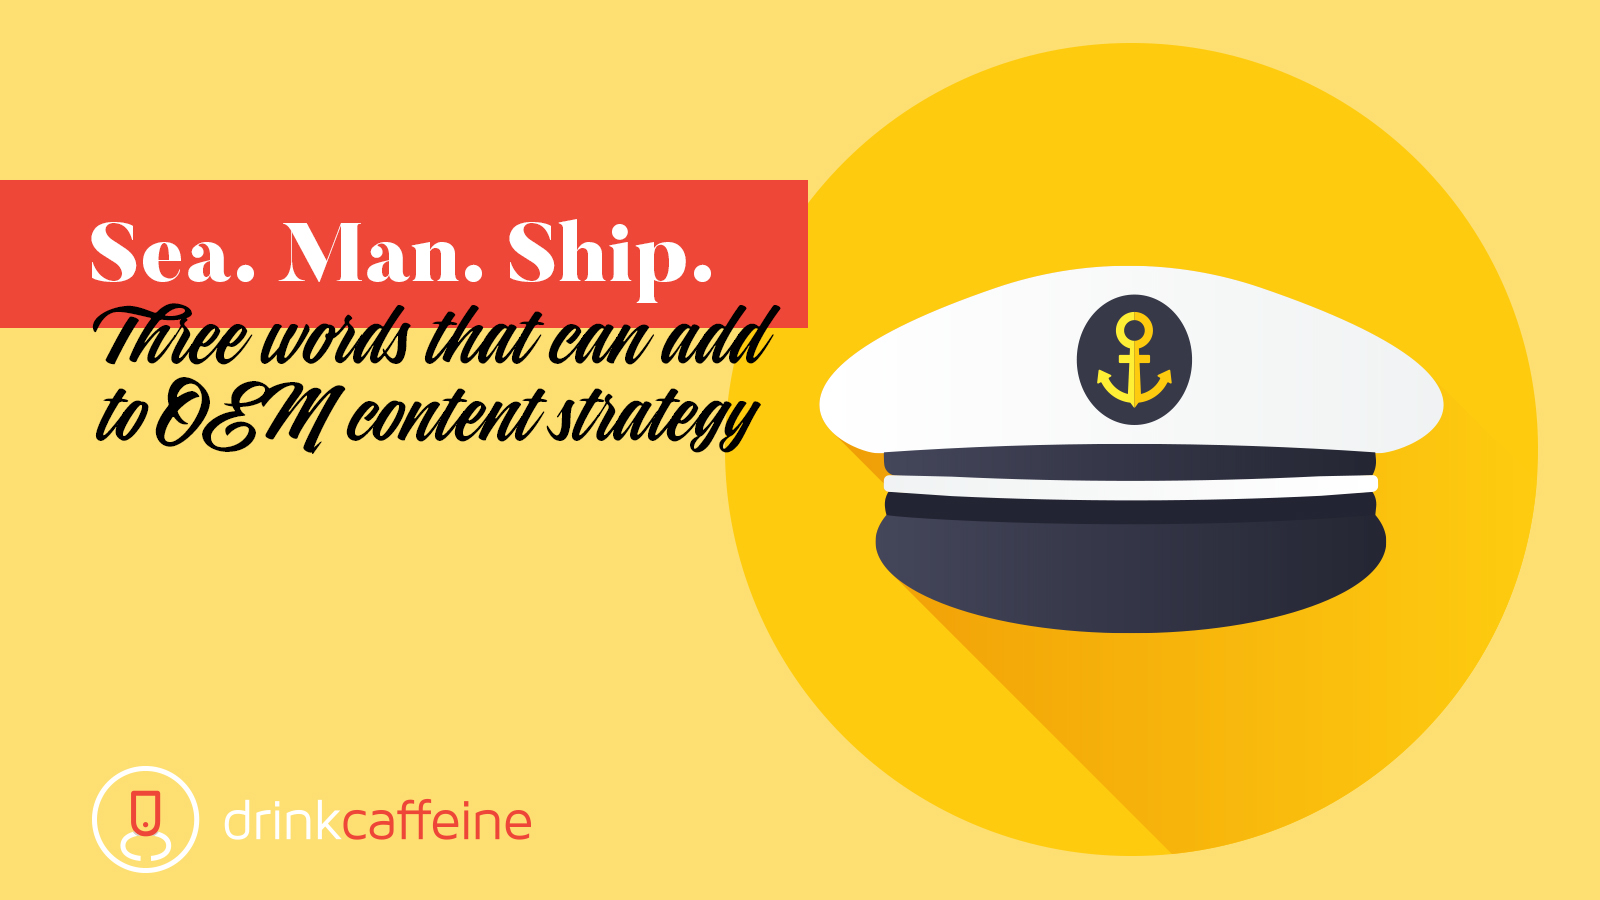 Sea. Man. Ship. Three words that can add to OEM content strategy blog image